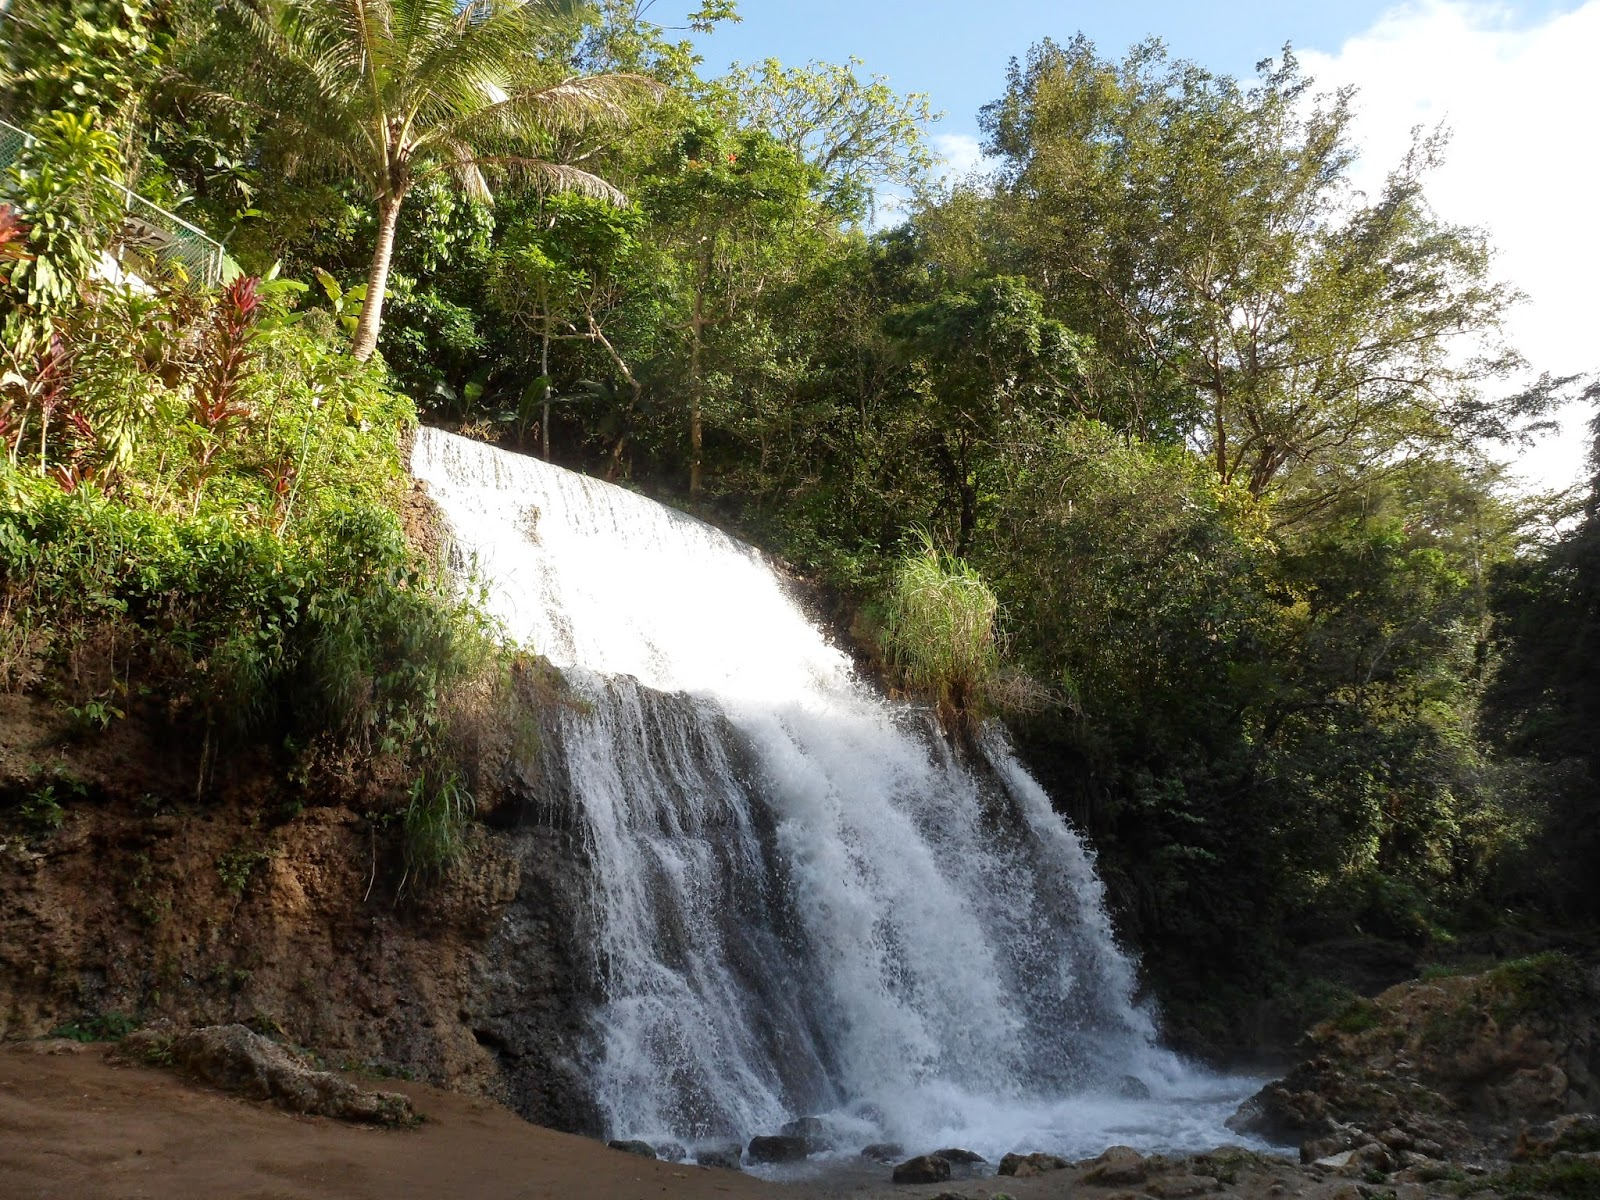 waterfall, Arecibo, Puerto Rico, honeymoon